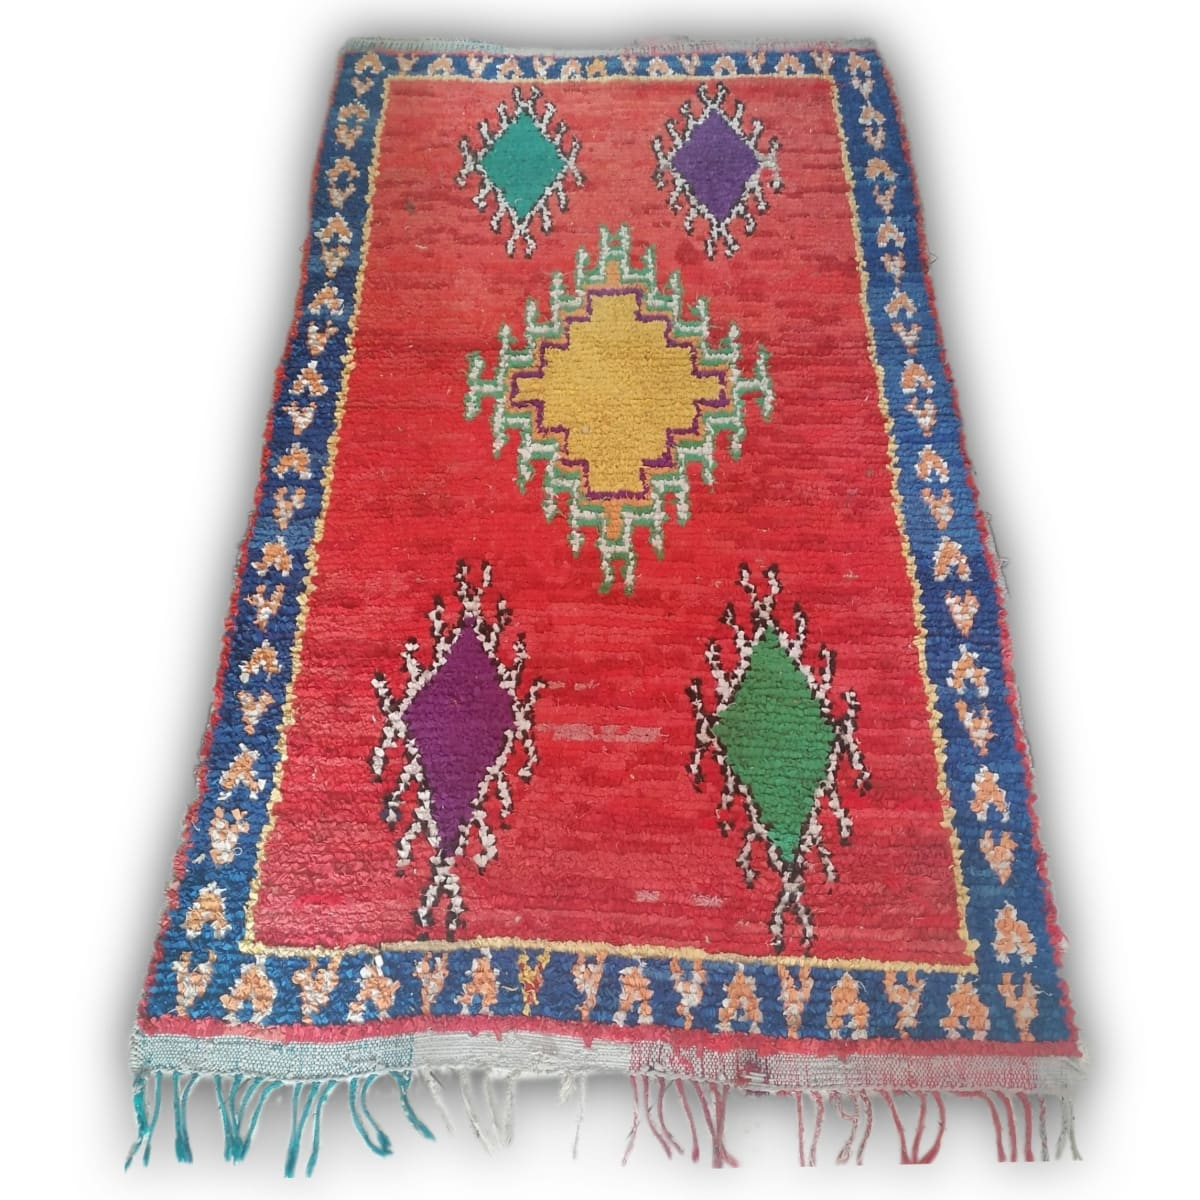 Geometric Vintage Moroccan Boucherouite Rug - by Home